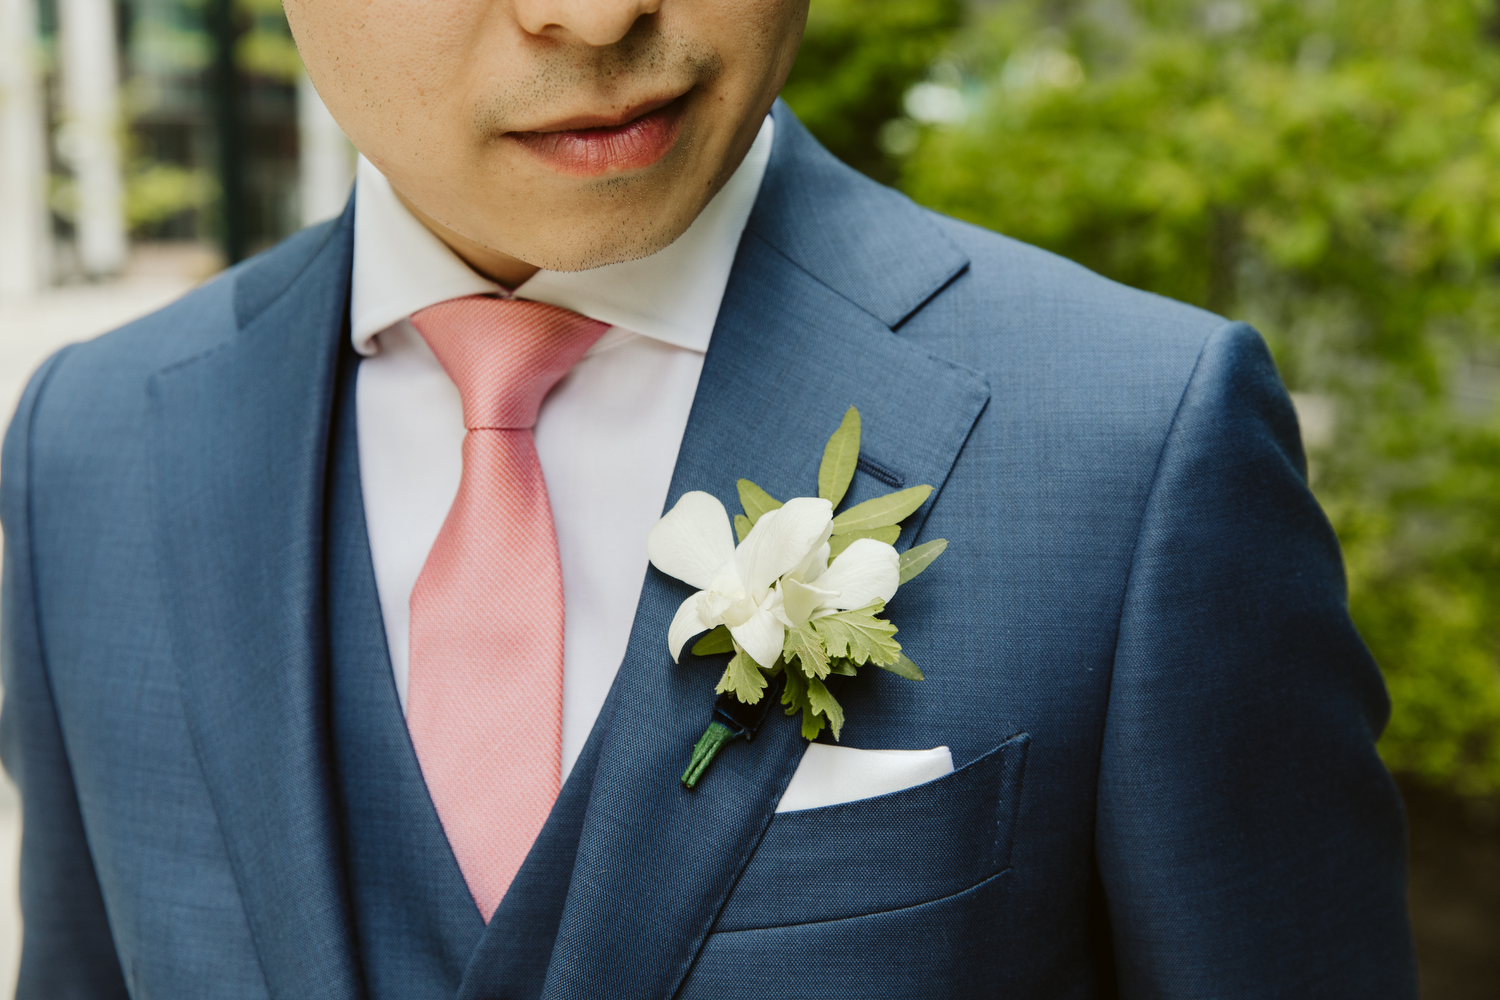 Blush and Bloom wedding flowers for groom